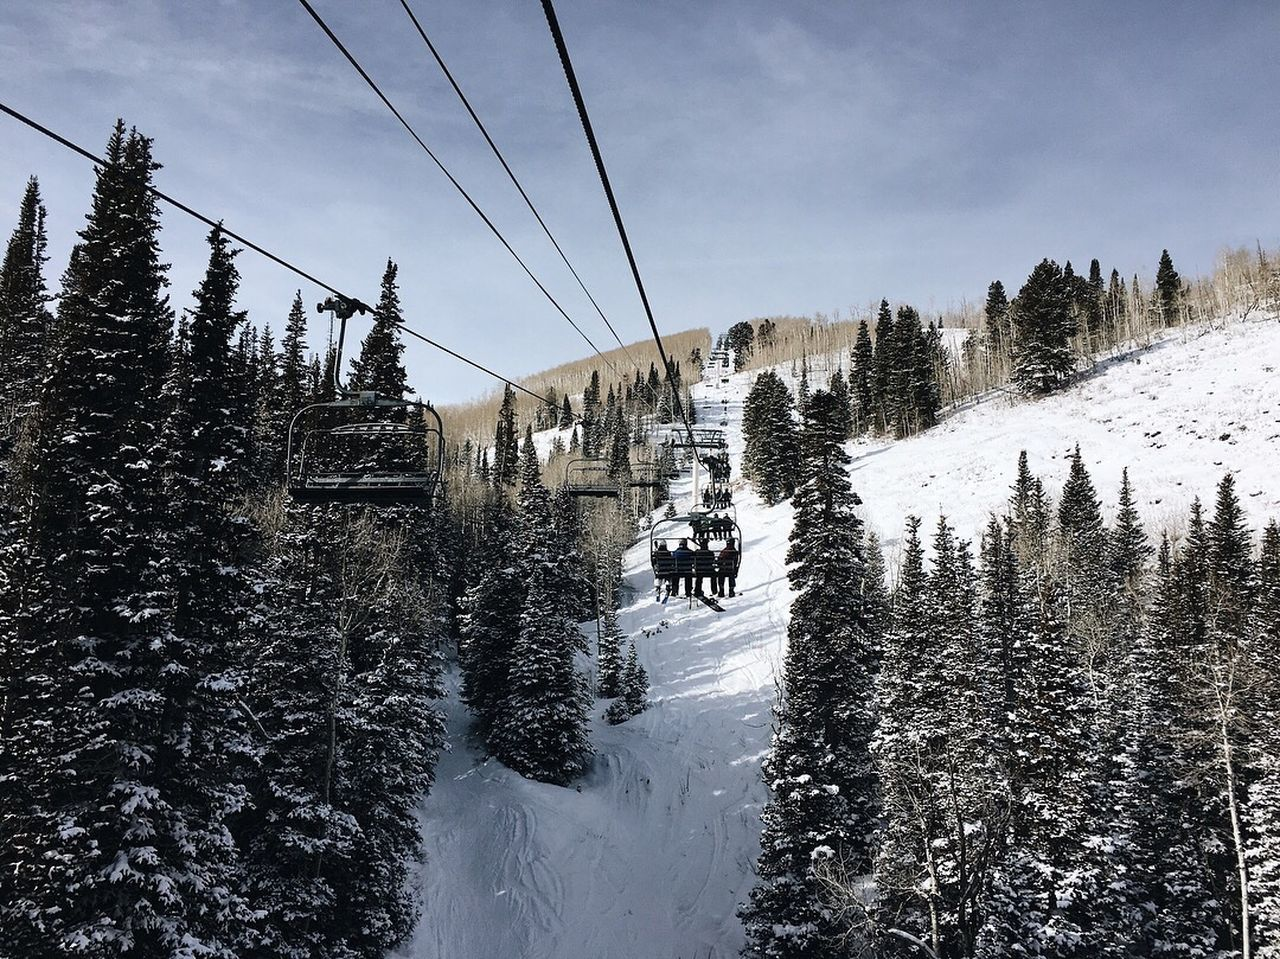 snow, winter, cold temperature, tree, sky, cable, plant, cable car, nature, mountain, beauty in nature, transportation, scenics - nature, overhead cable car, ski lift, day, land, incidental people, covering, outdoors, electricity, snowcapped mountain